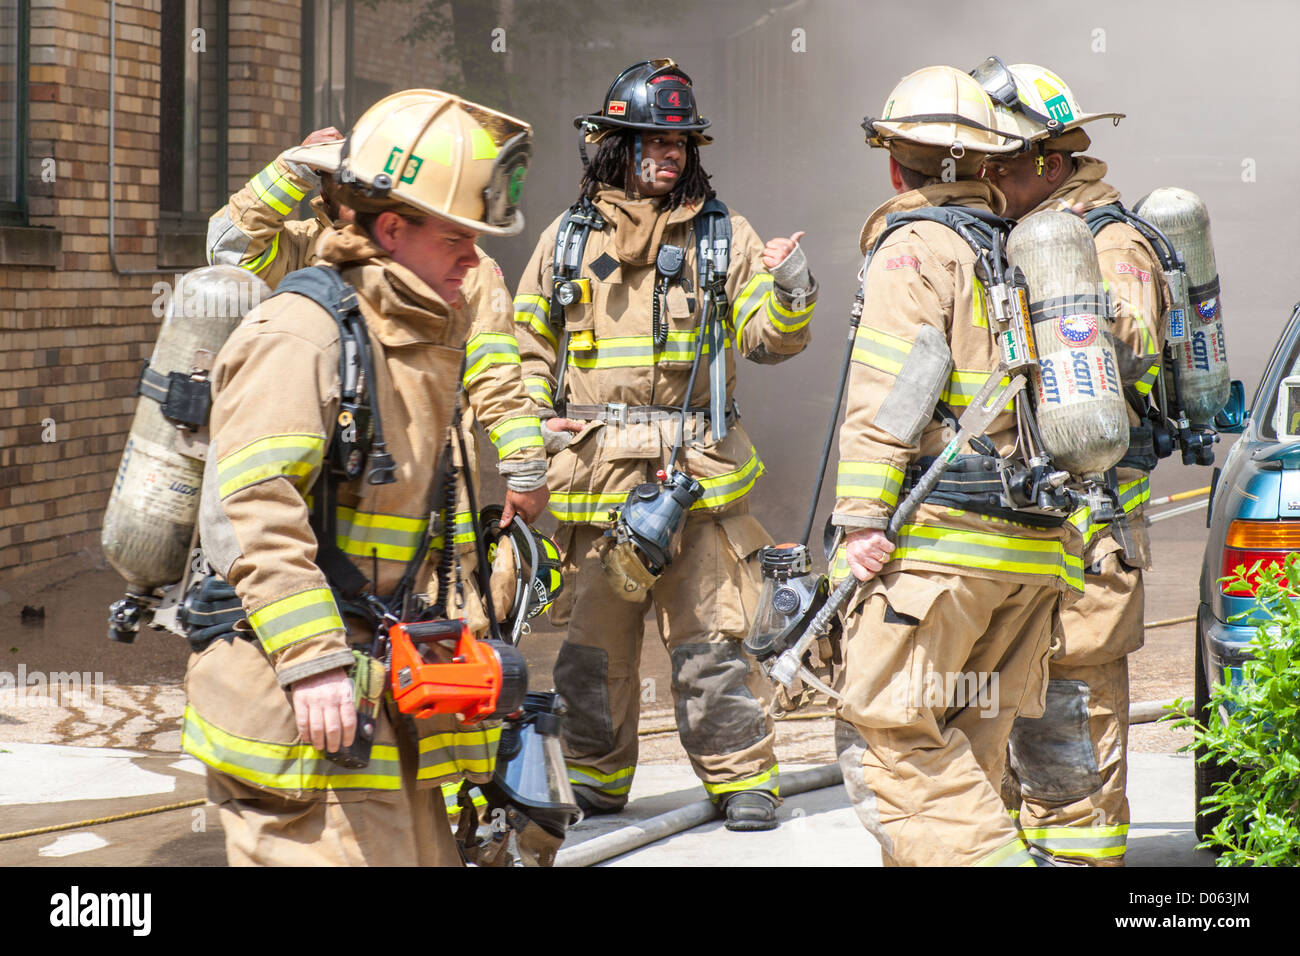 https://c7.alamy.com/comp/D063JM/american-fire-fighters-firemen-in-front-of-a-burning-building-discussing-D063JM.jpg